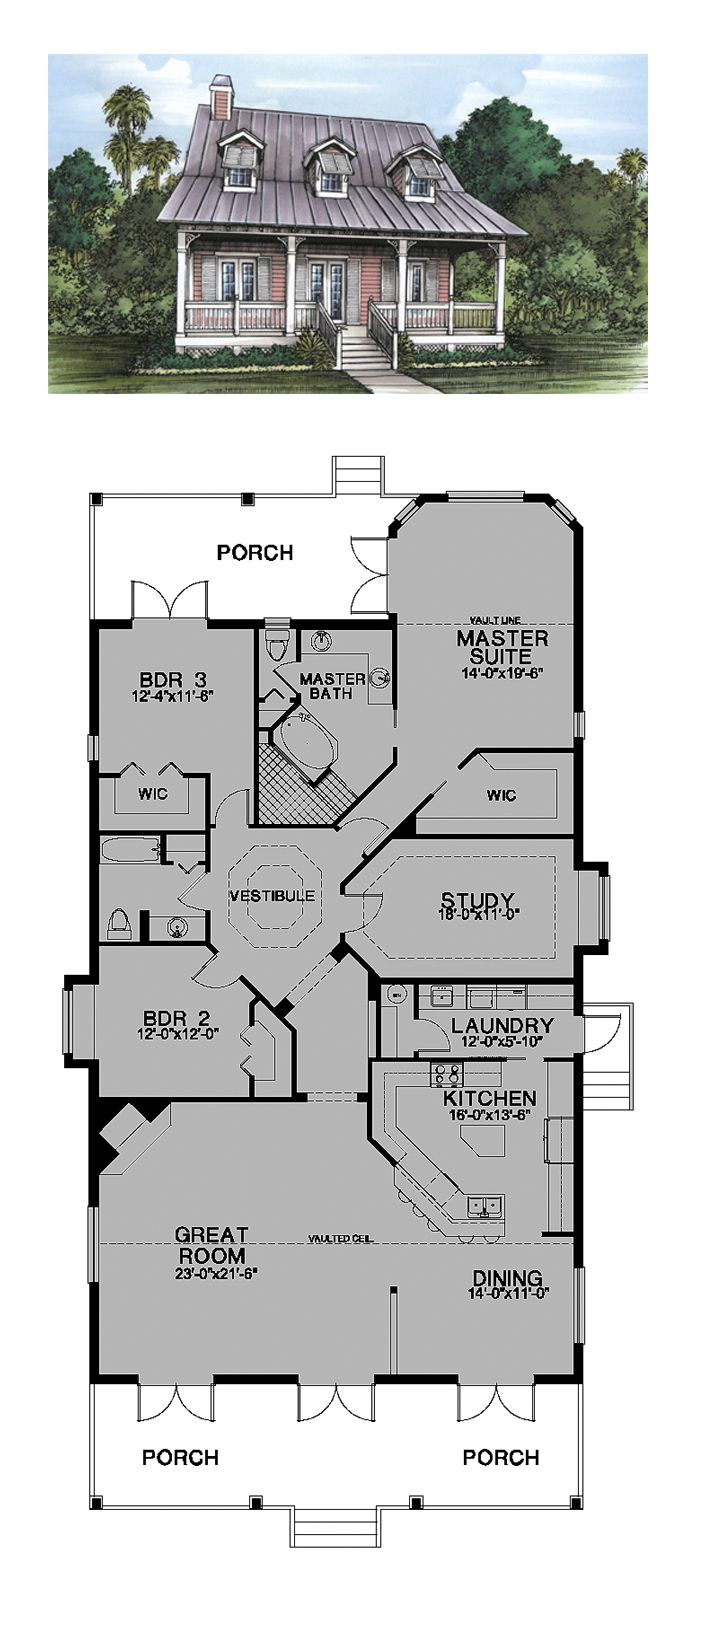 Sunset house plans find floor plans home designs and house for Florida house plans with photos